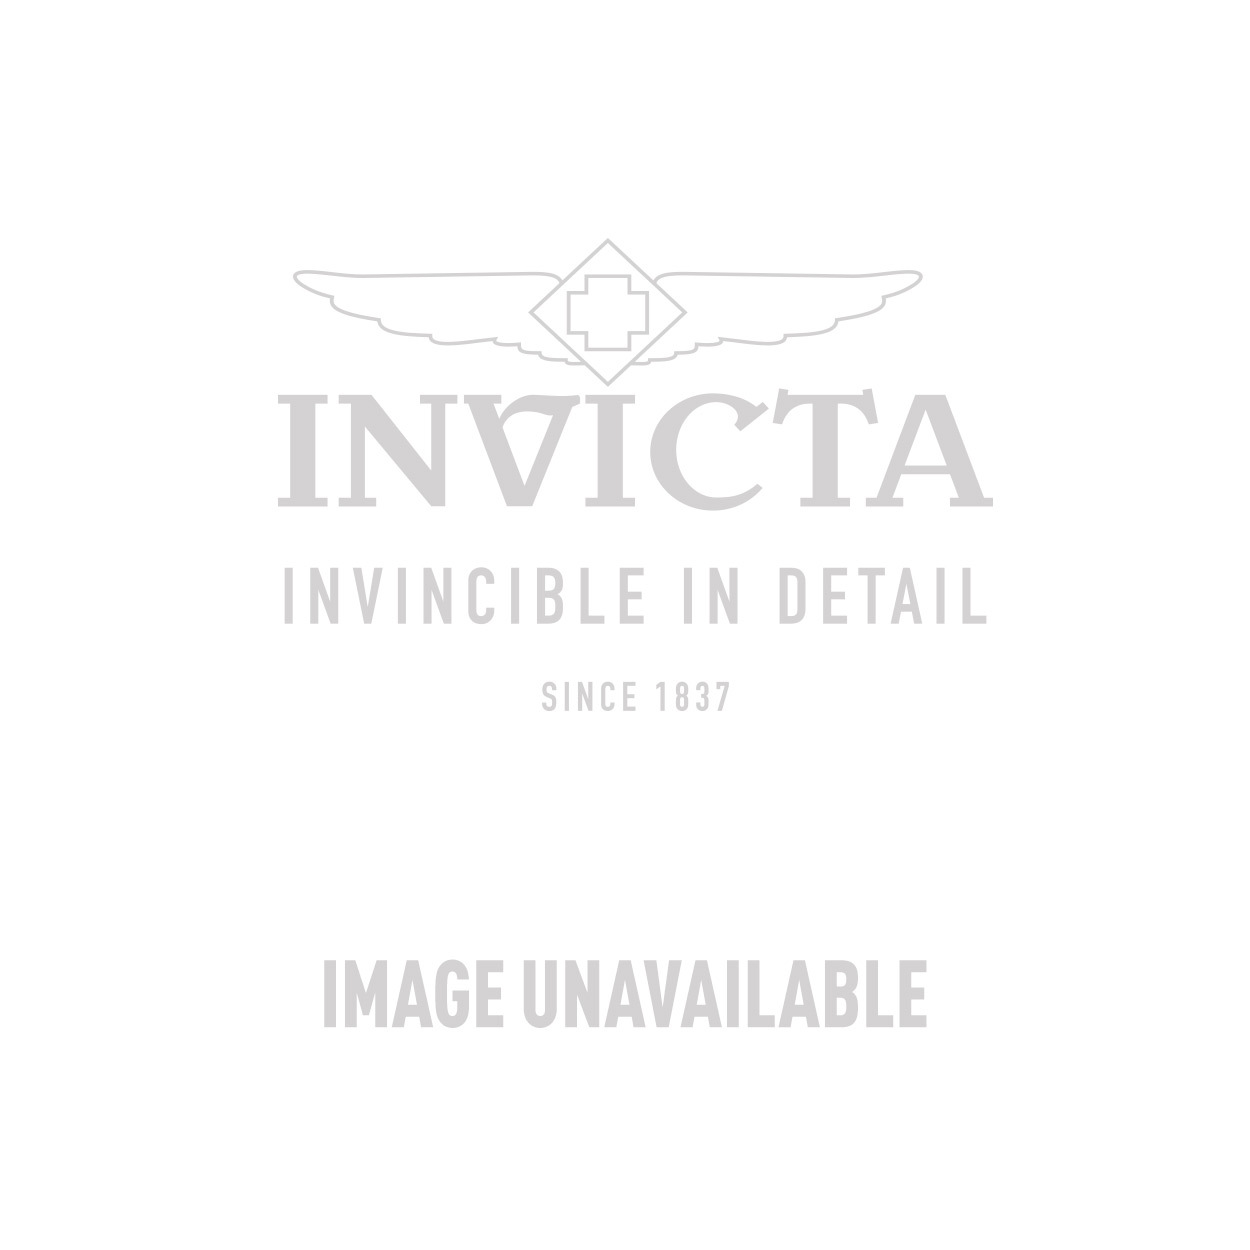 Invicta S1 Rally Quartz Watch - Stainless Steel case with Black tone Leather band - Model 16012